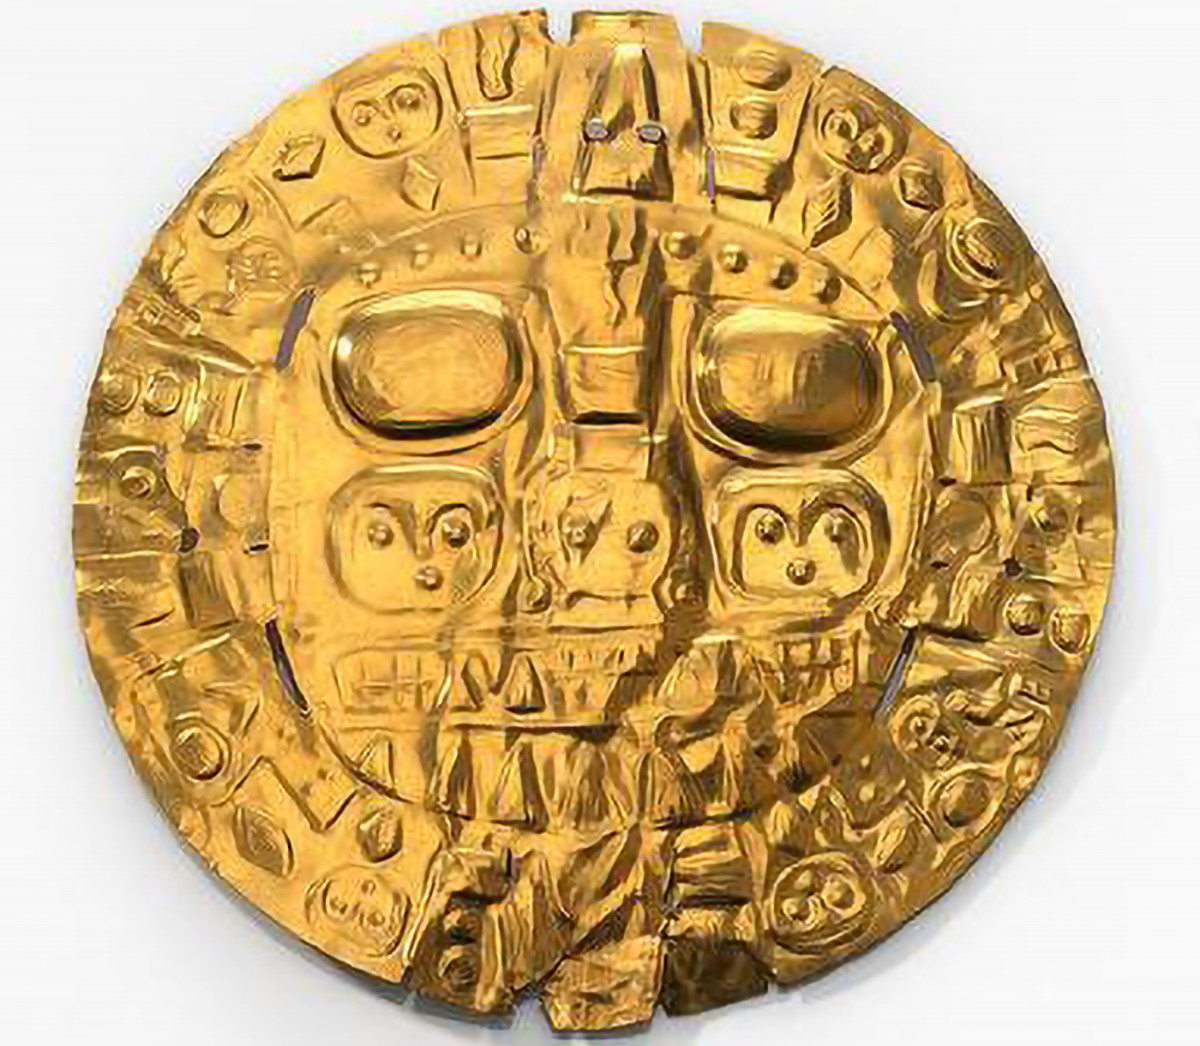 National Museum of the American Indian and the Government of the Republic of Peru sign a memorandum of understanding to return the 'Echenique Disc' to Peru